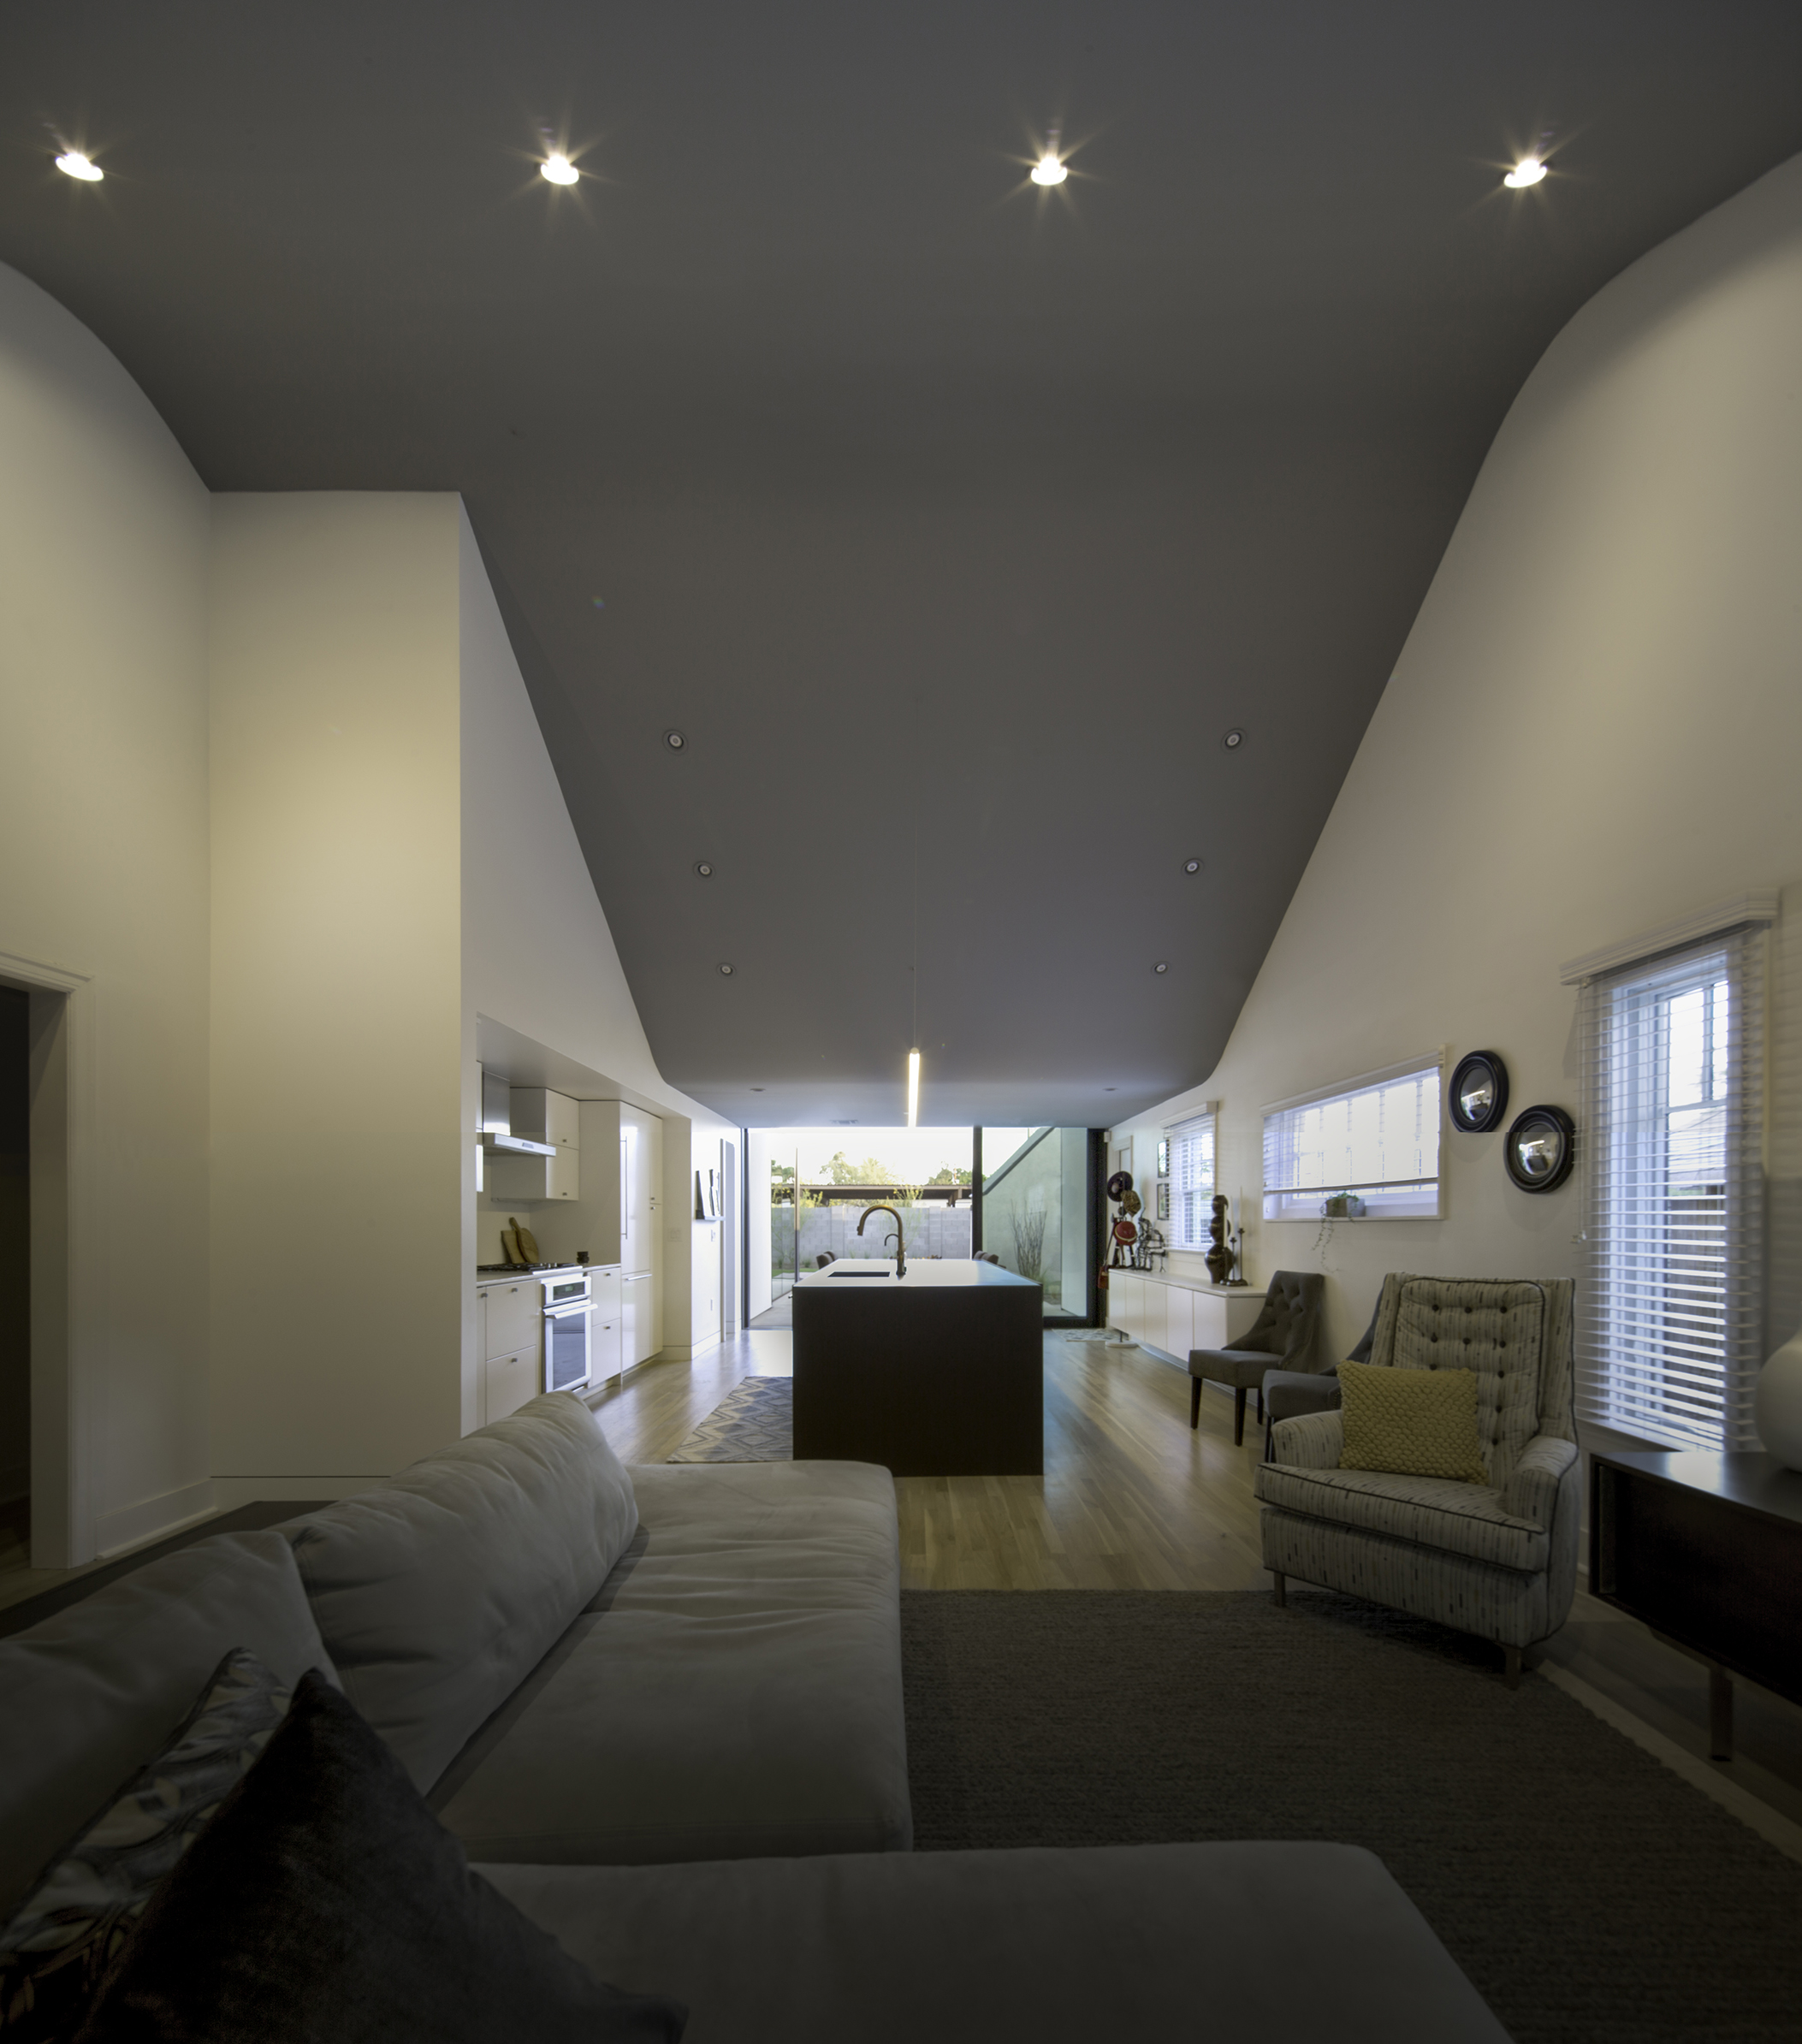 03 Chen + Suchart Studio LLC - Escobar Renovation Image